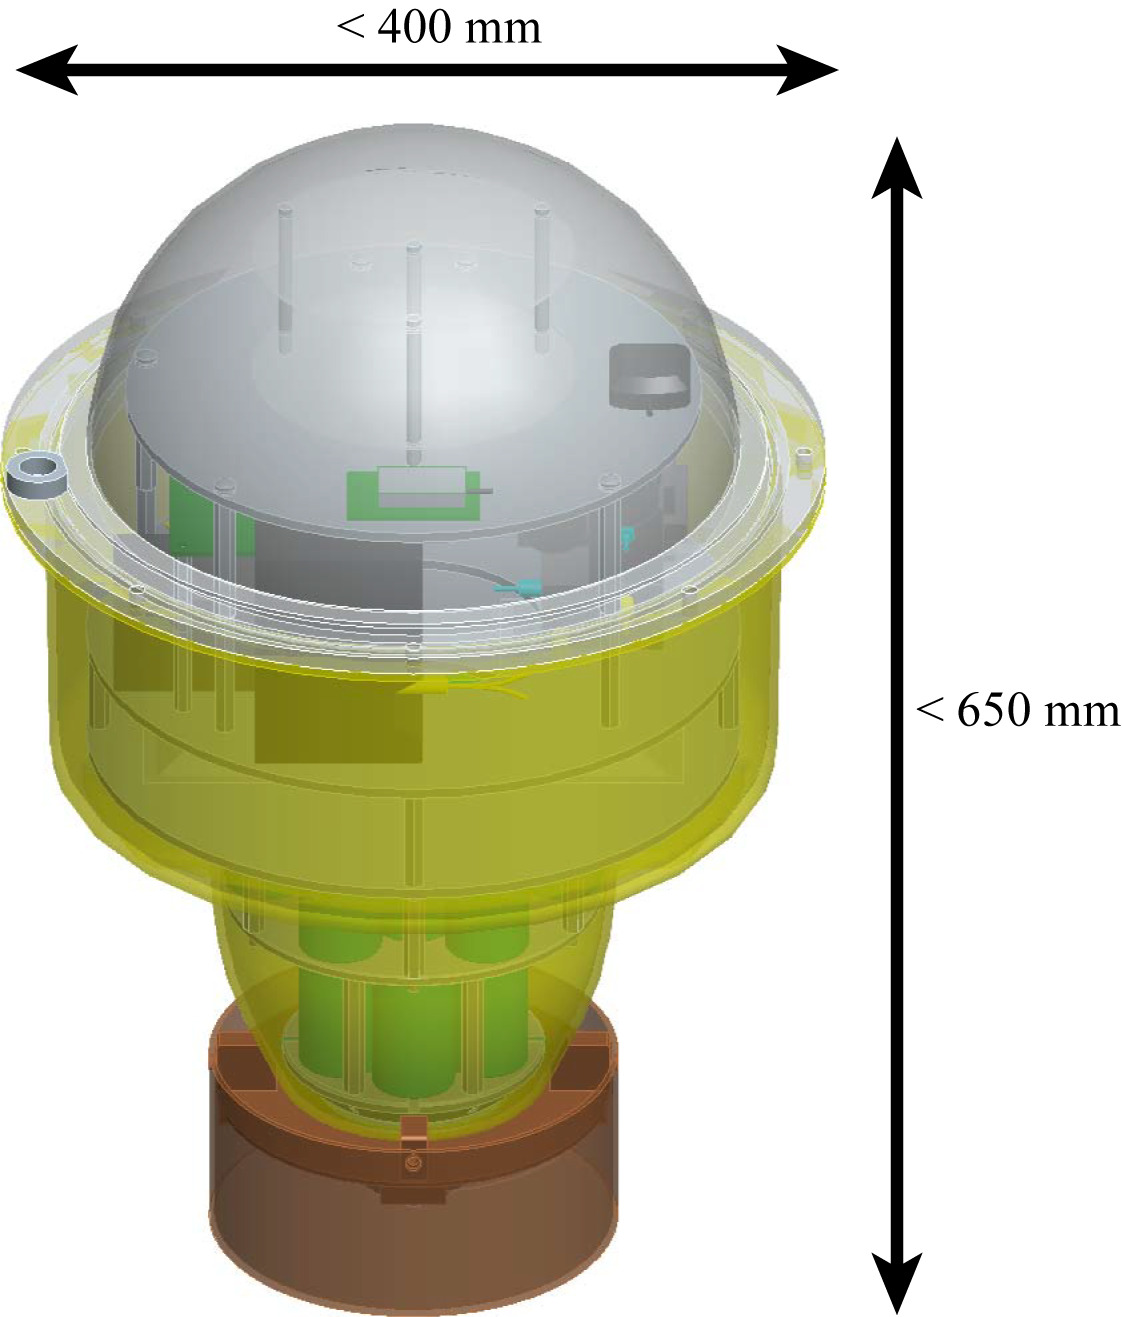 The buoy is 315 mm in diameter and 566 mm high with a weight of ~10 kg (credits JAMSTEC)